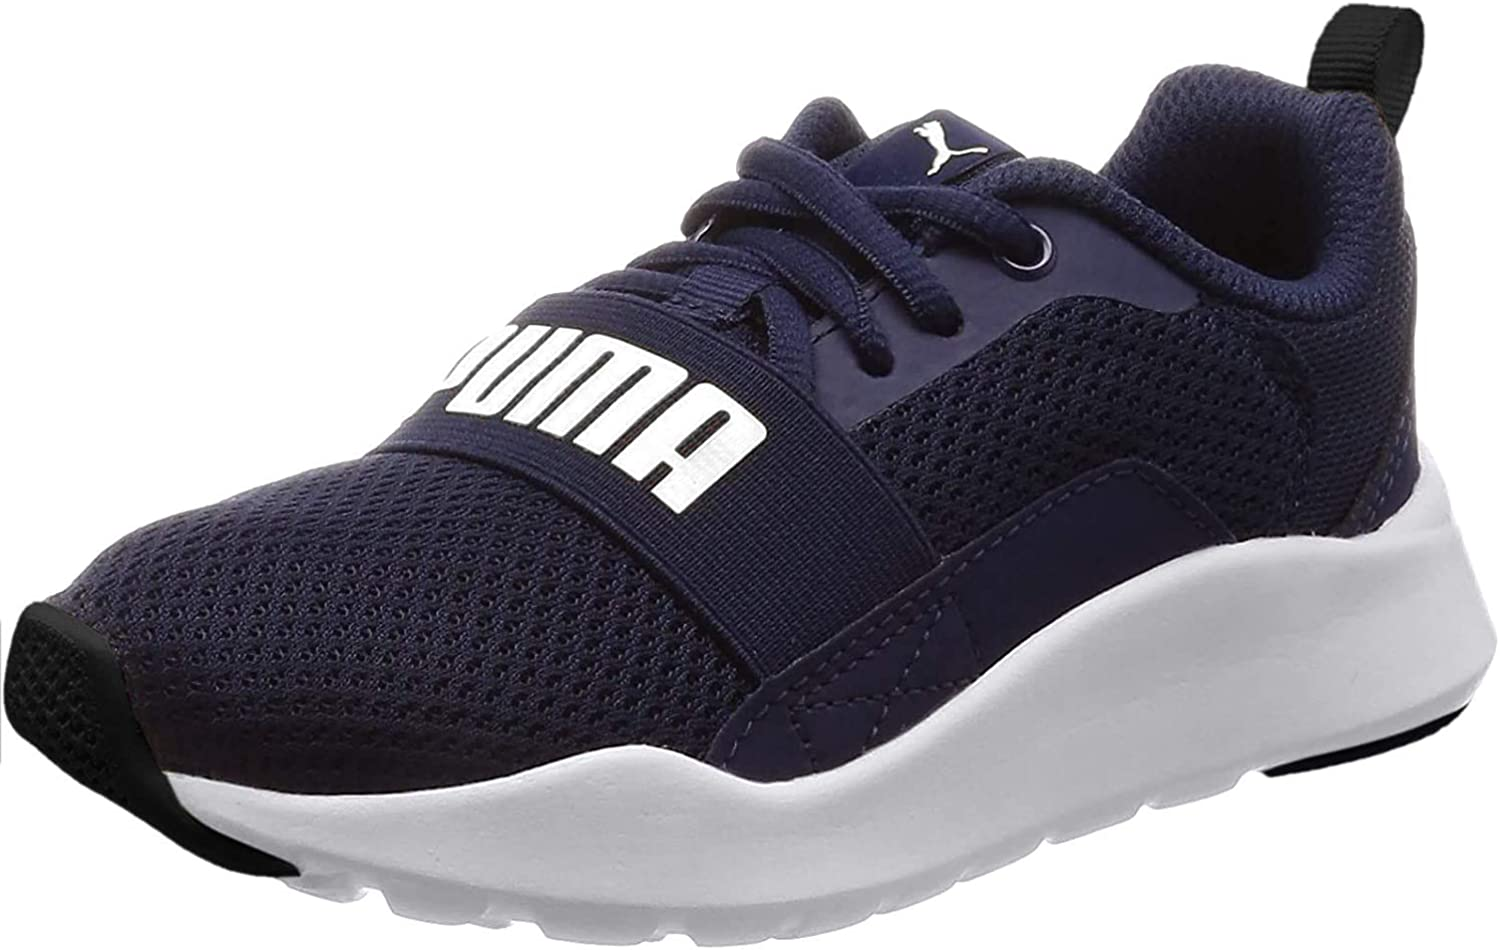 PUMA Wired PS, Sneakers Basses Mixte Enfant : Amazon.fr ...